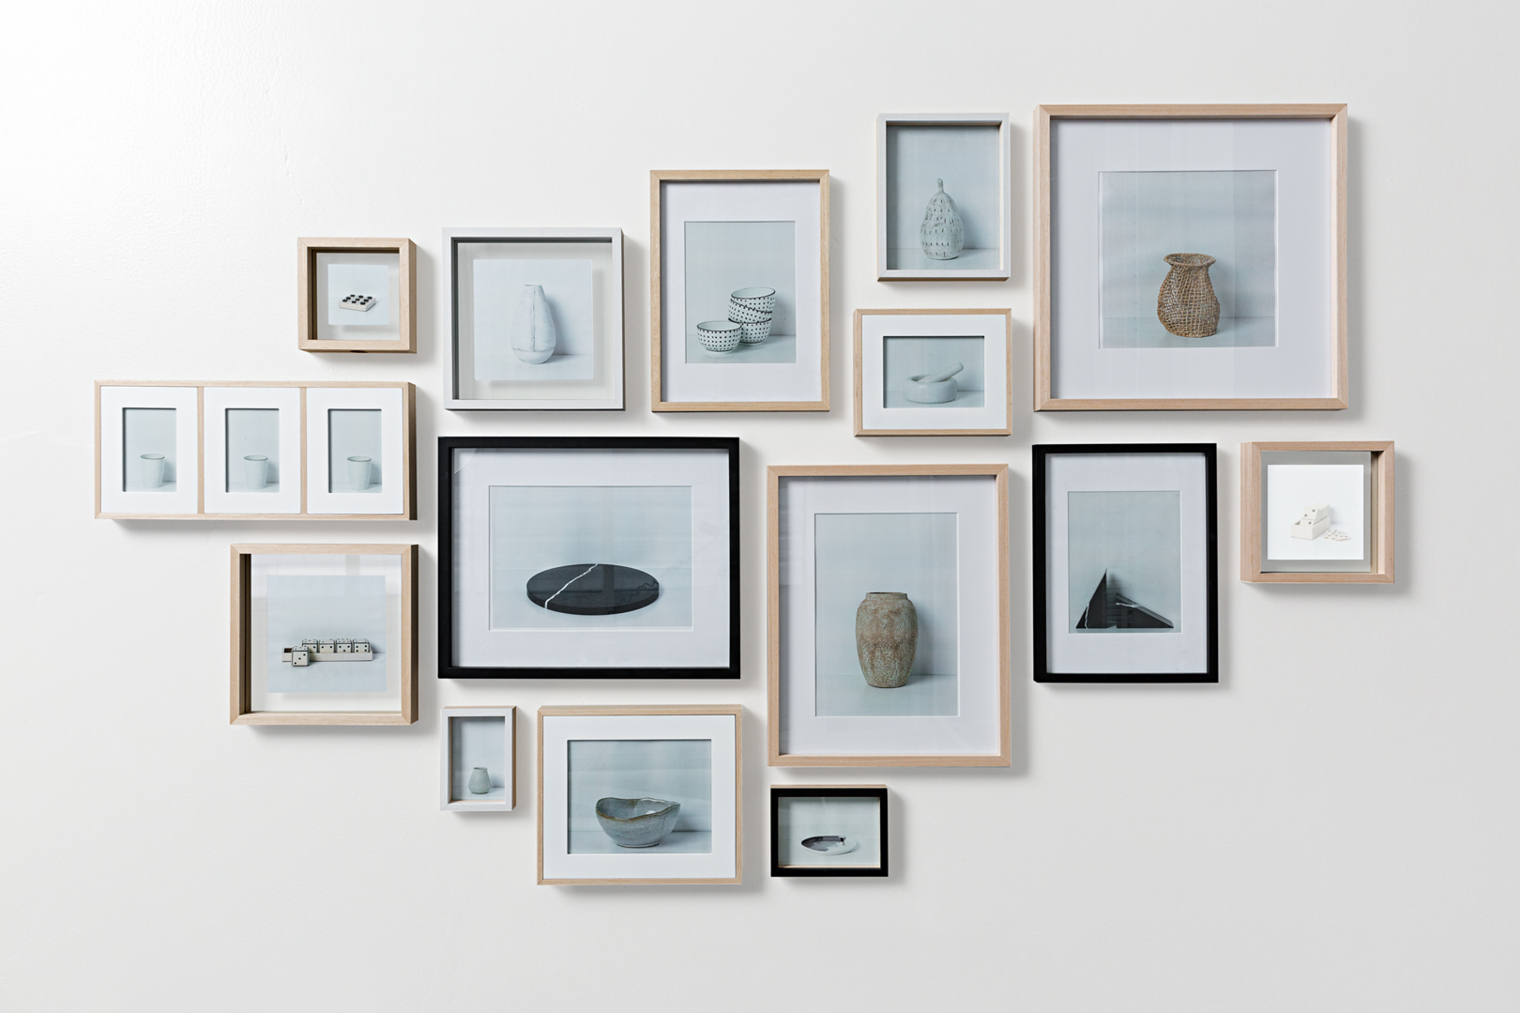 Gallery walls: the art of frames